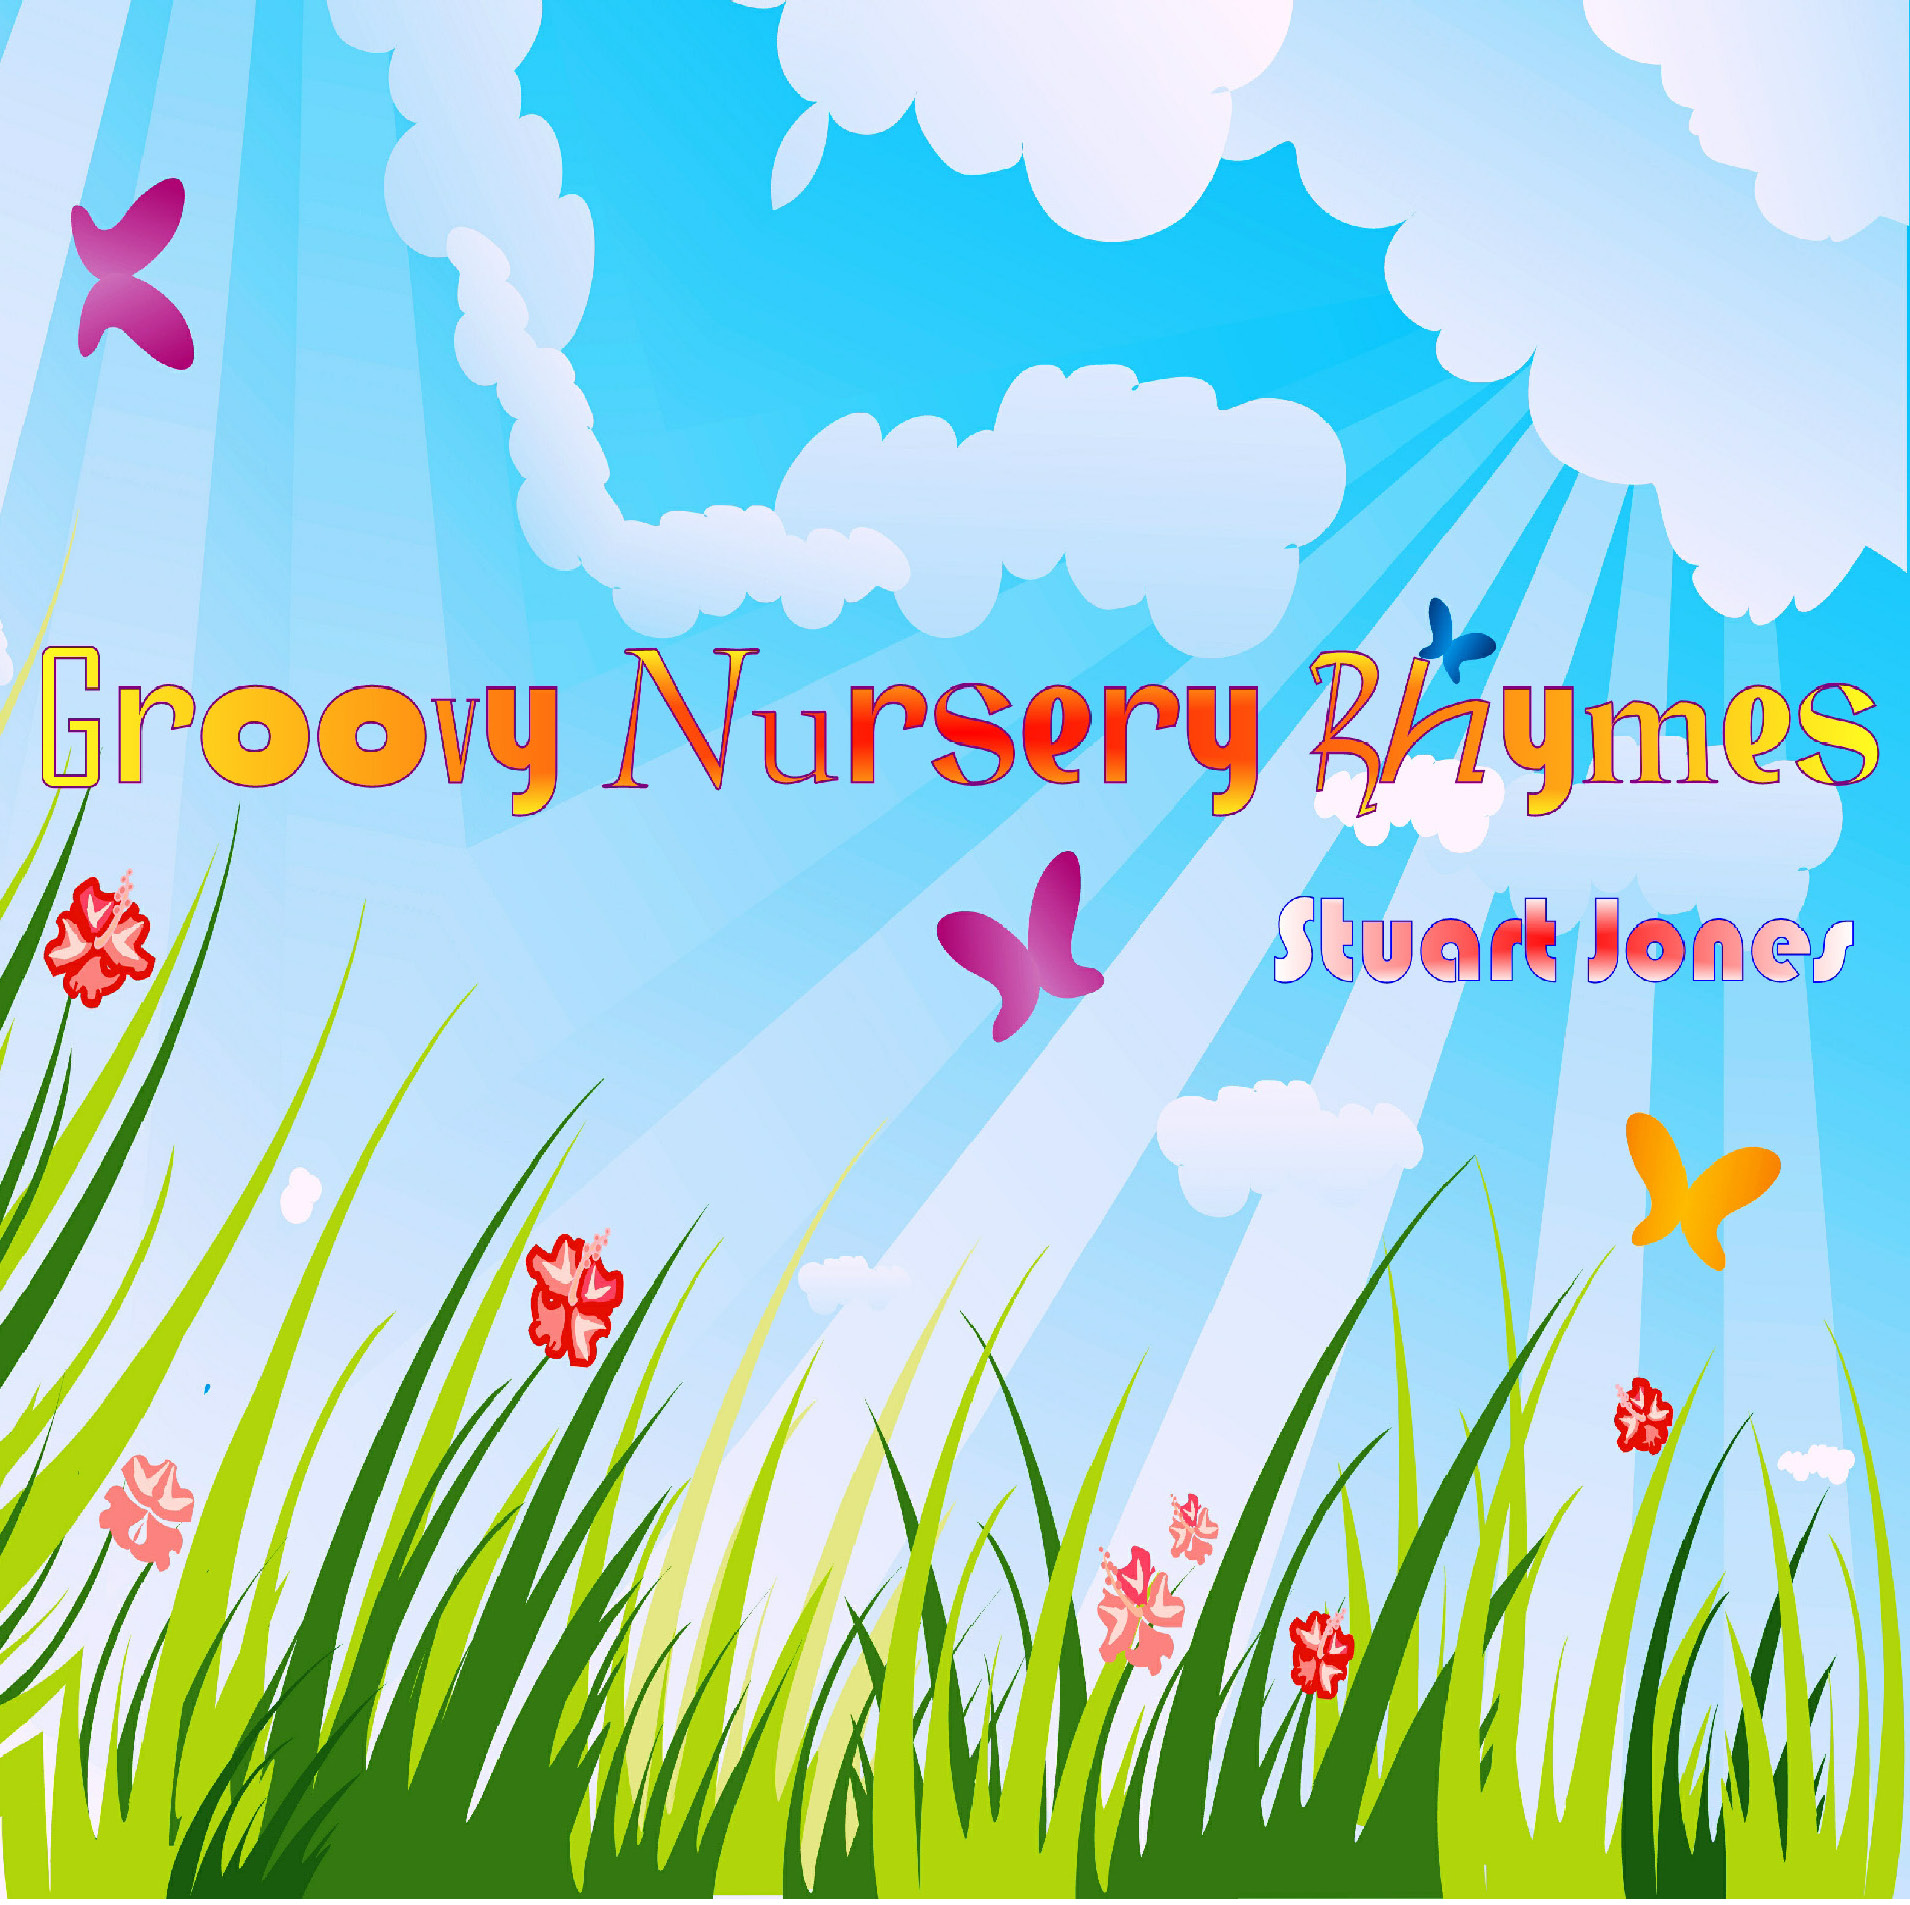 Groovy Nursery Rhymes by Stuart Jones